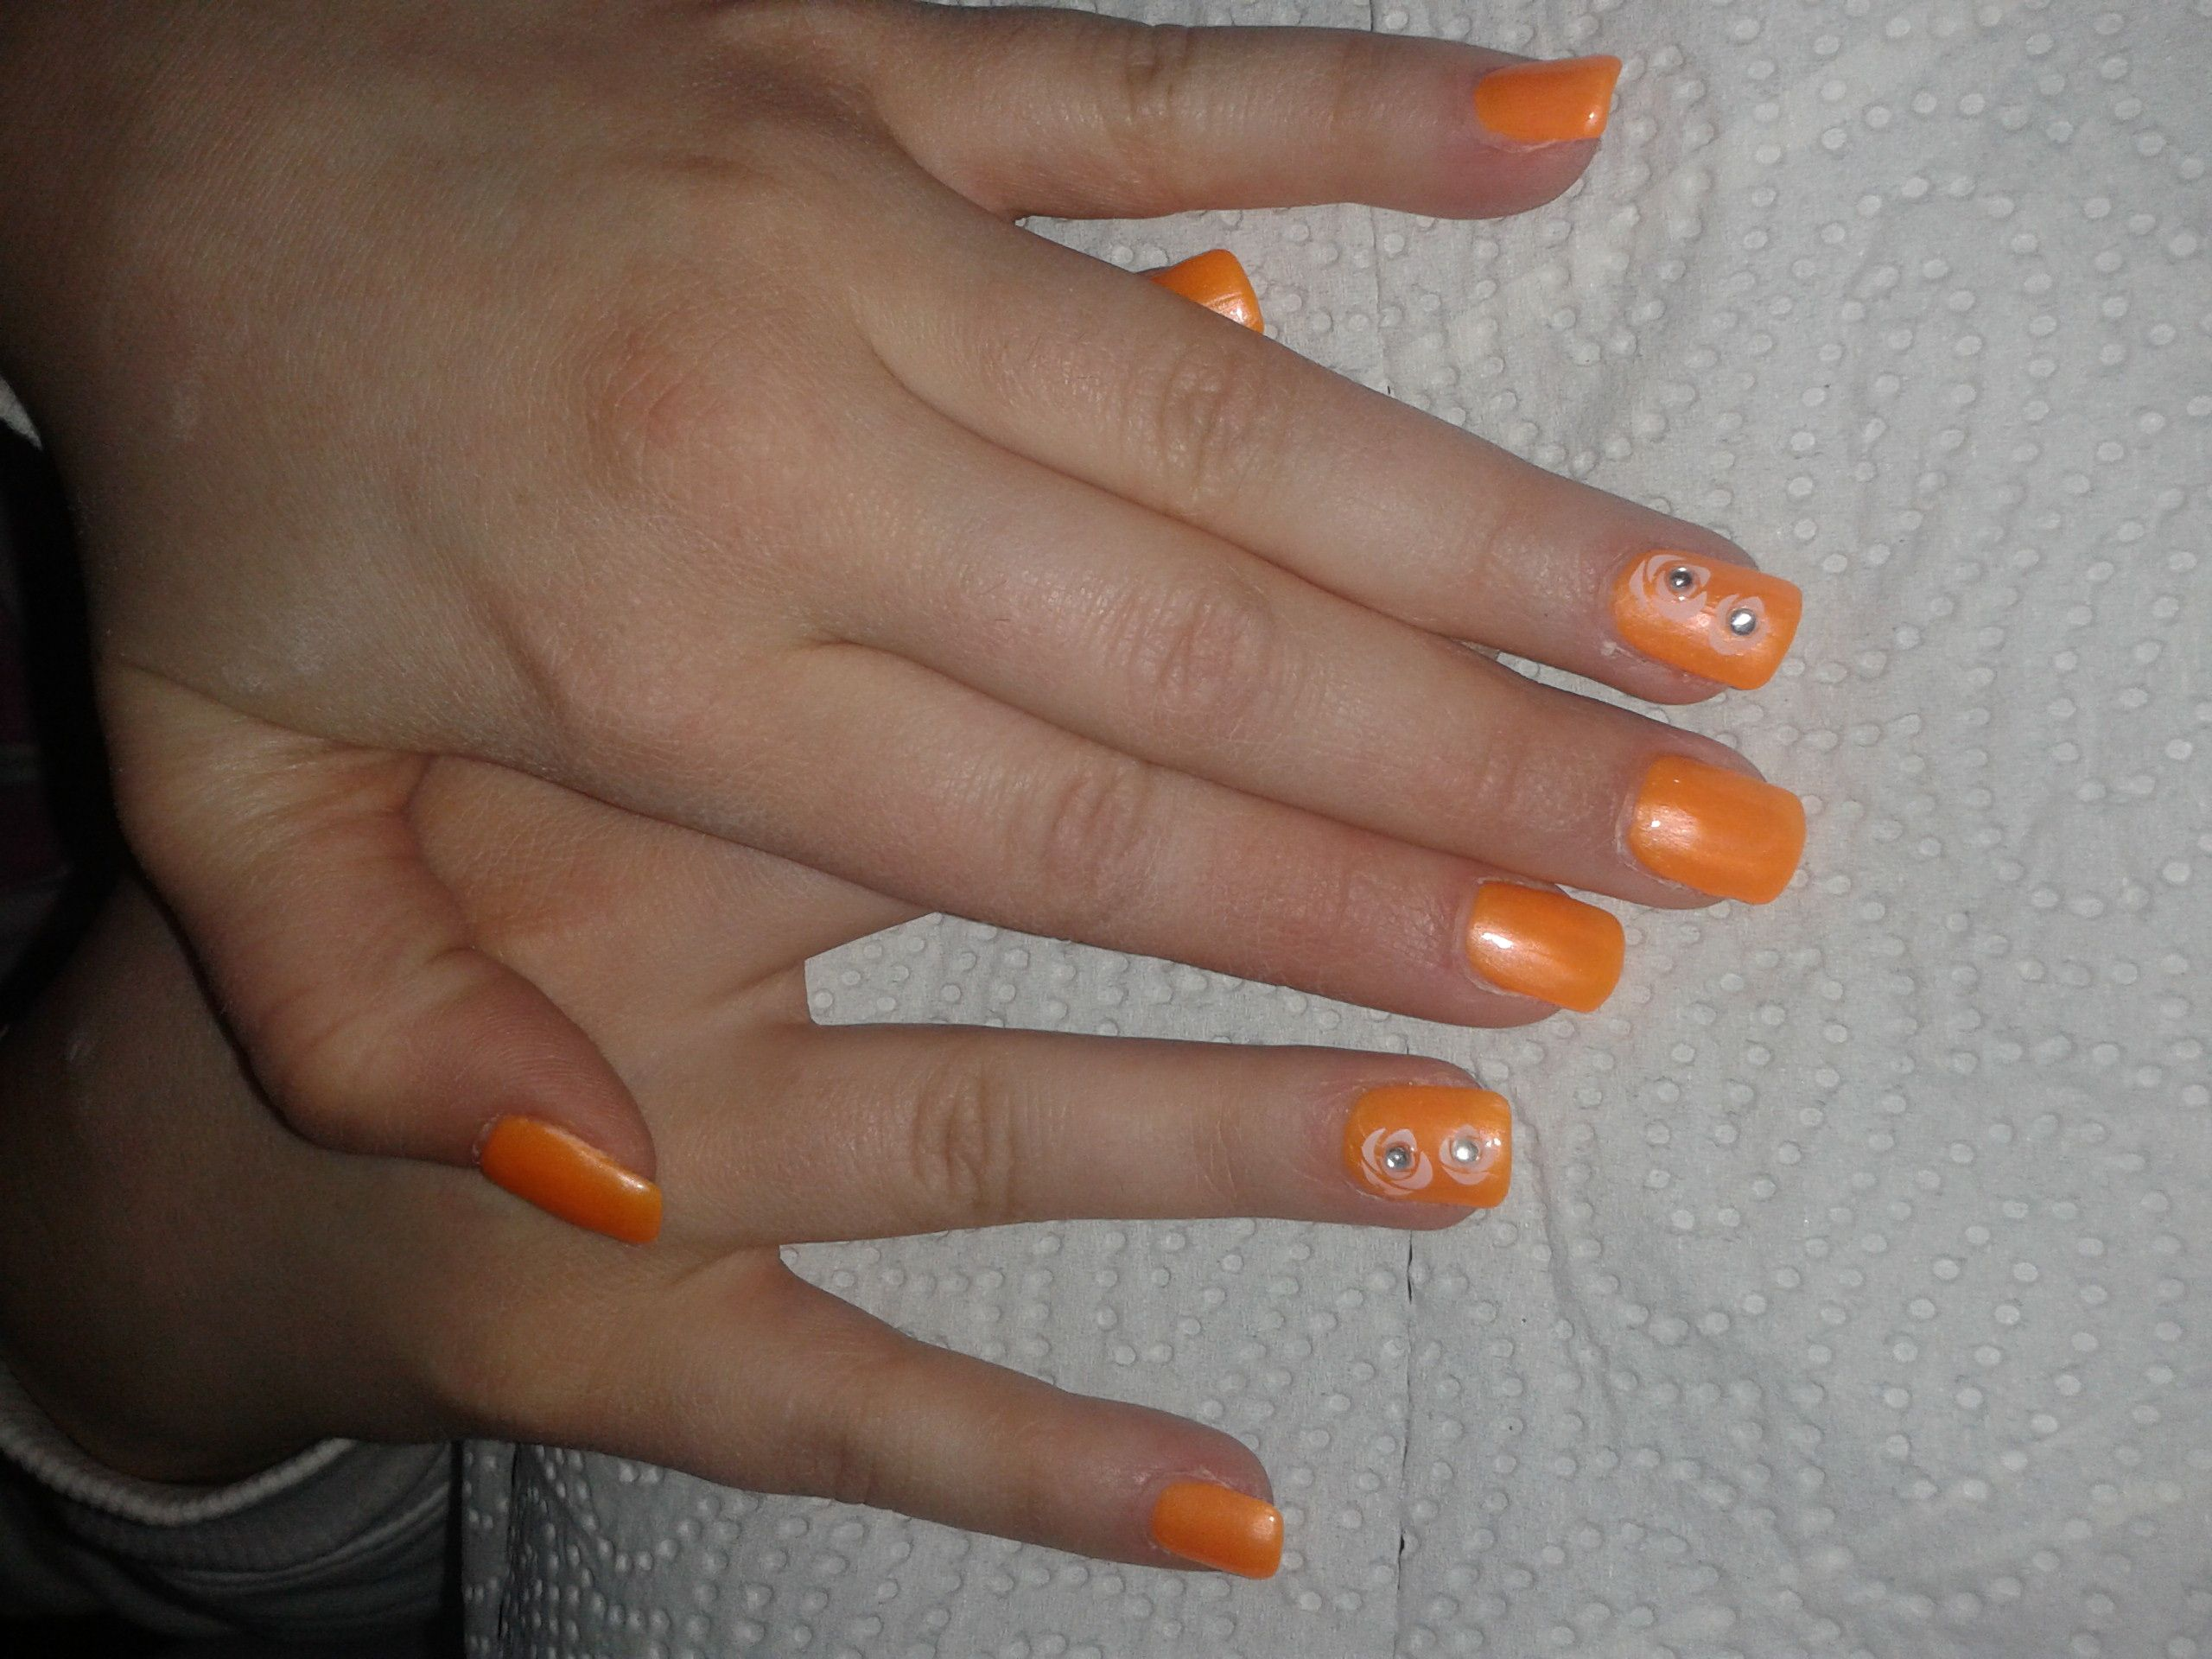 Nails by ela from www.nageldesign-galerie.de